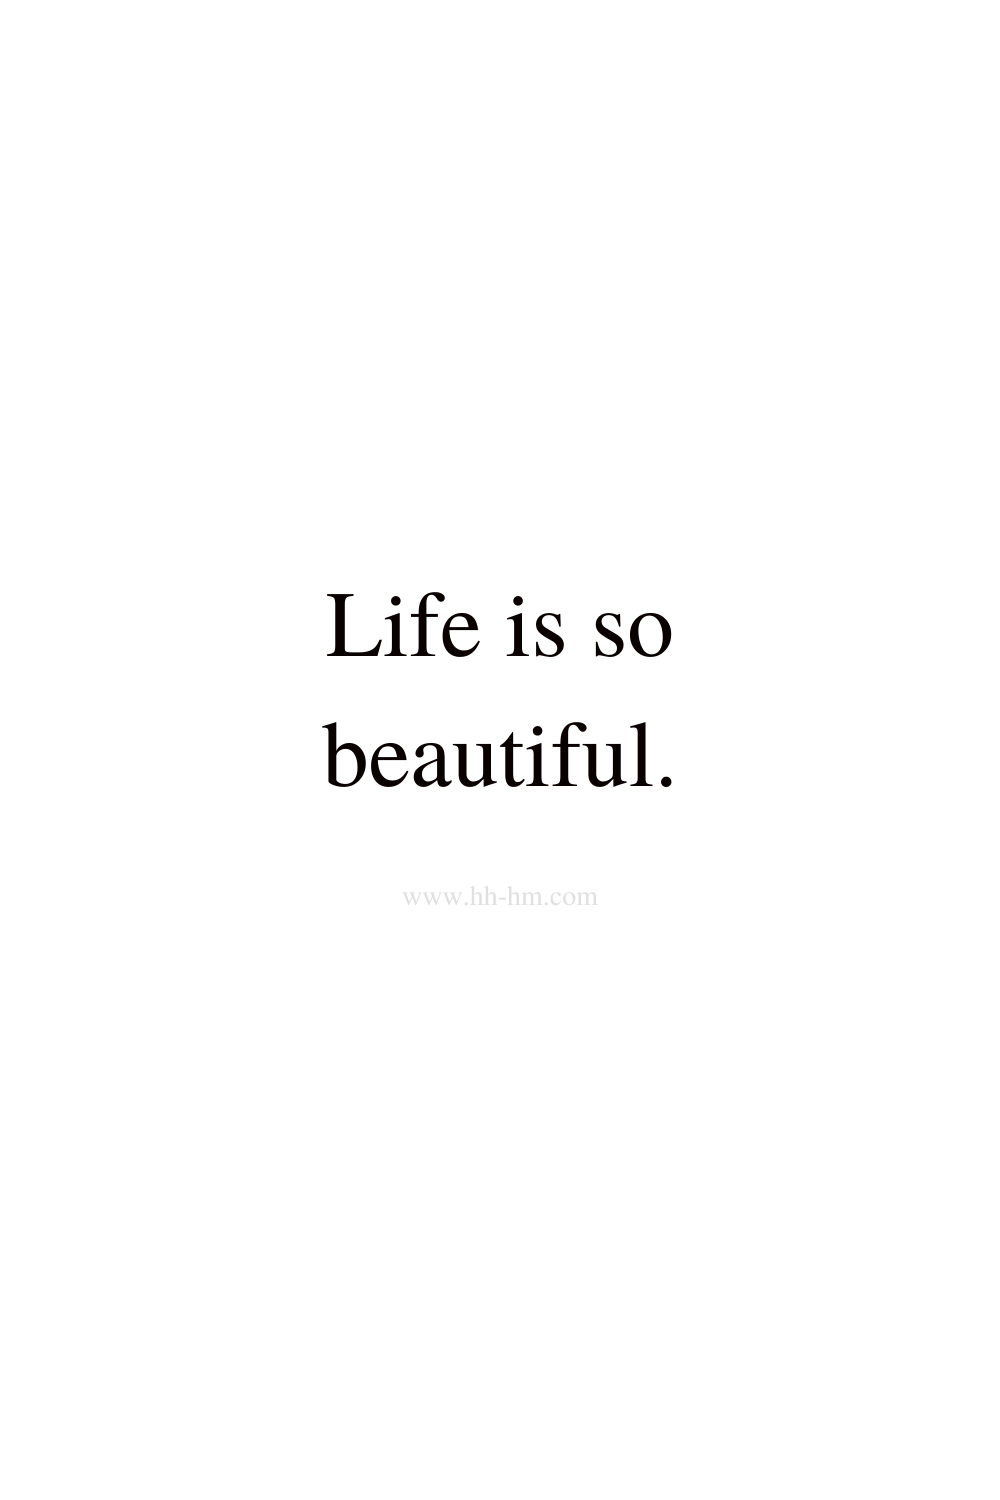 Life is so beautiful - morning affirmations